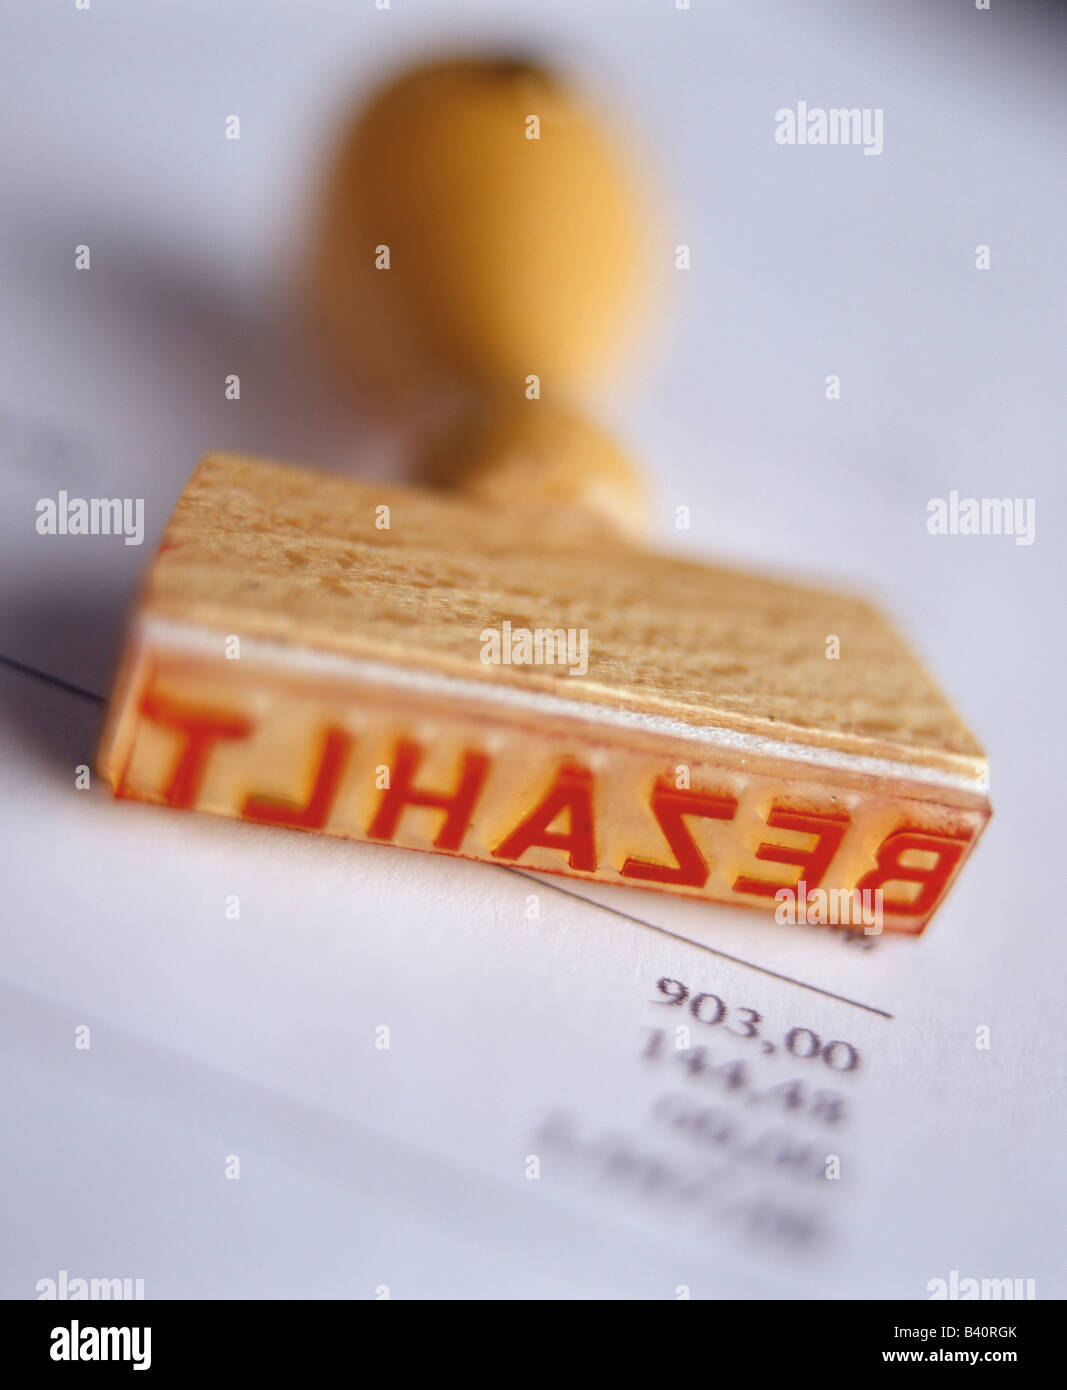 Paid Stamp On An Invoice Stock Photo Alamy - Invoice paid stamp